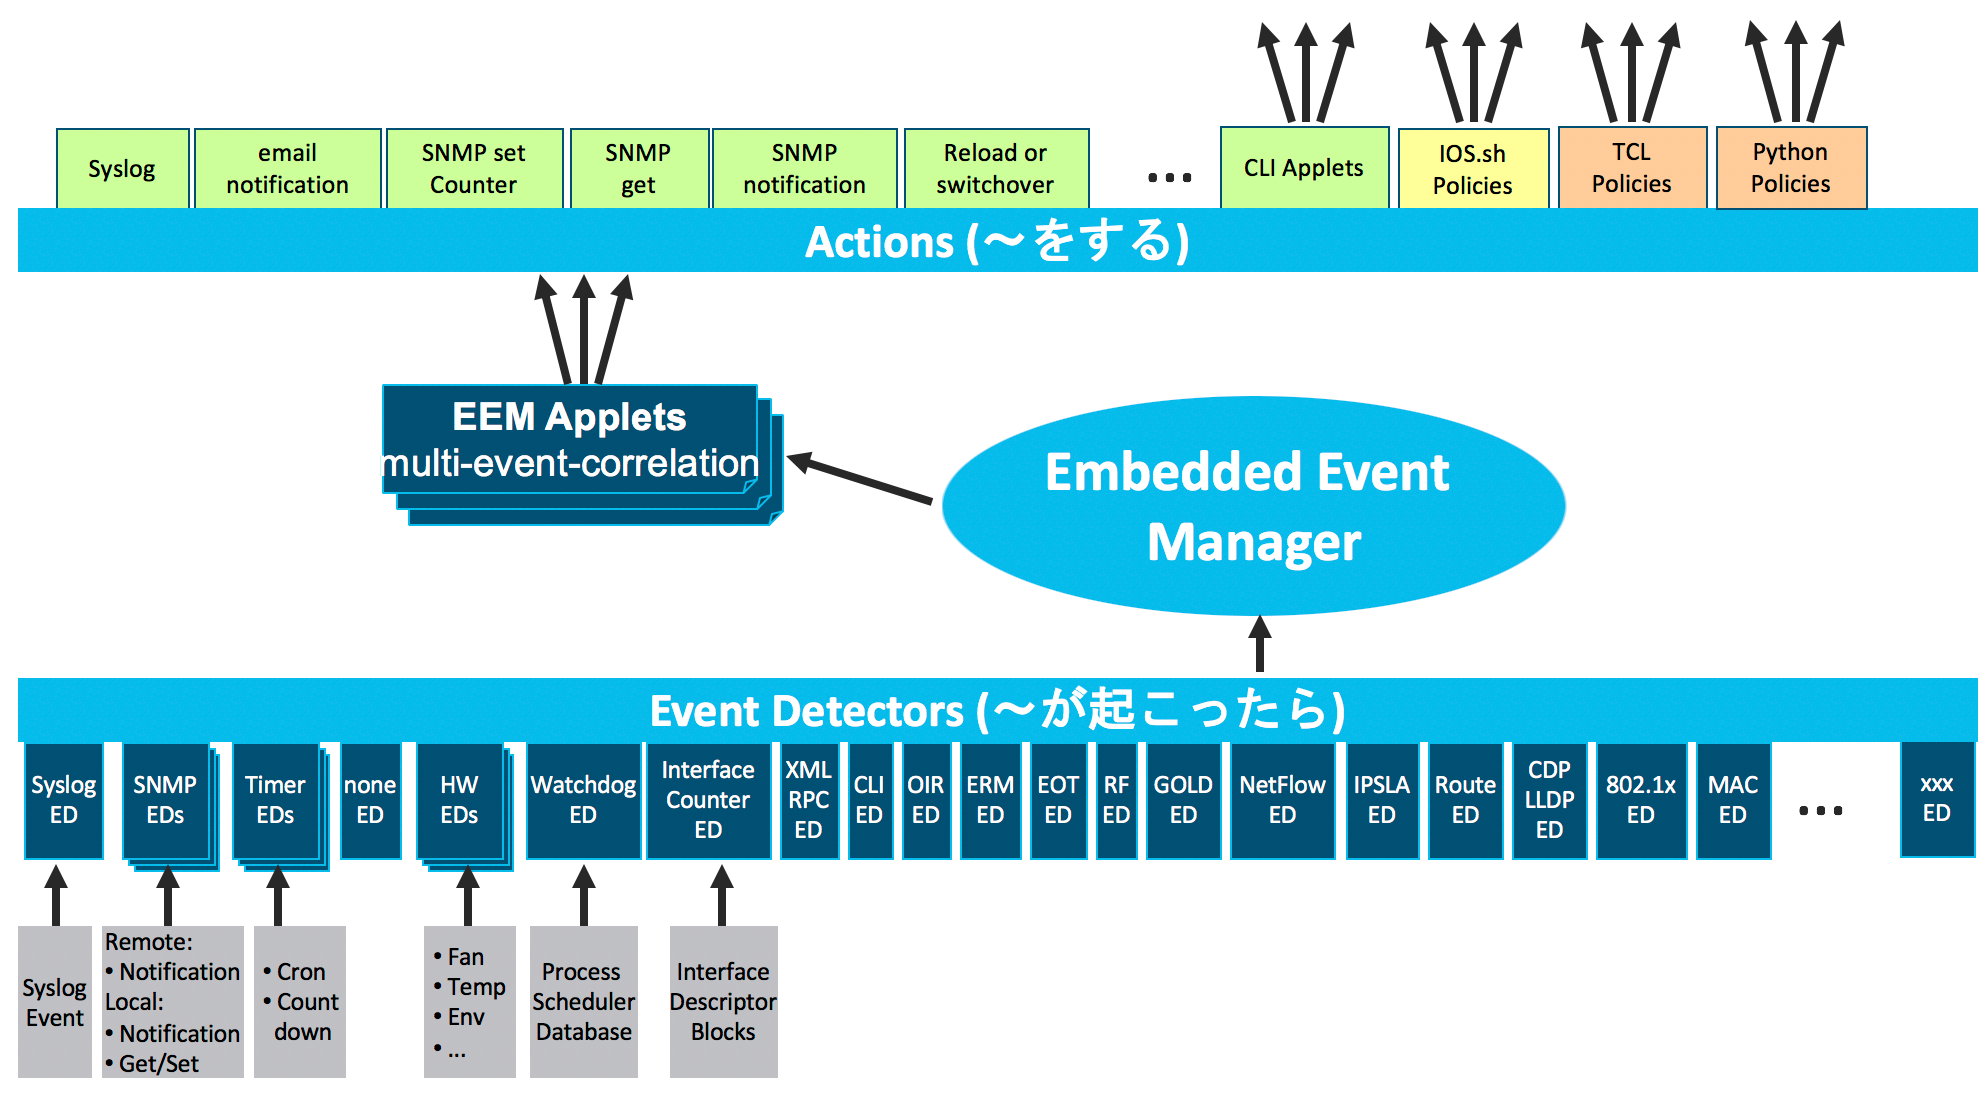 EEM Event Detectors and Actions